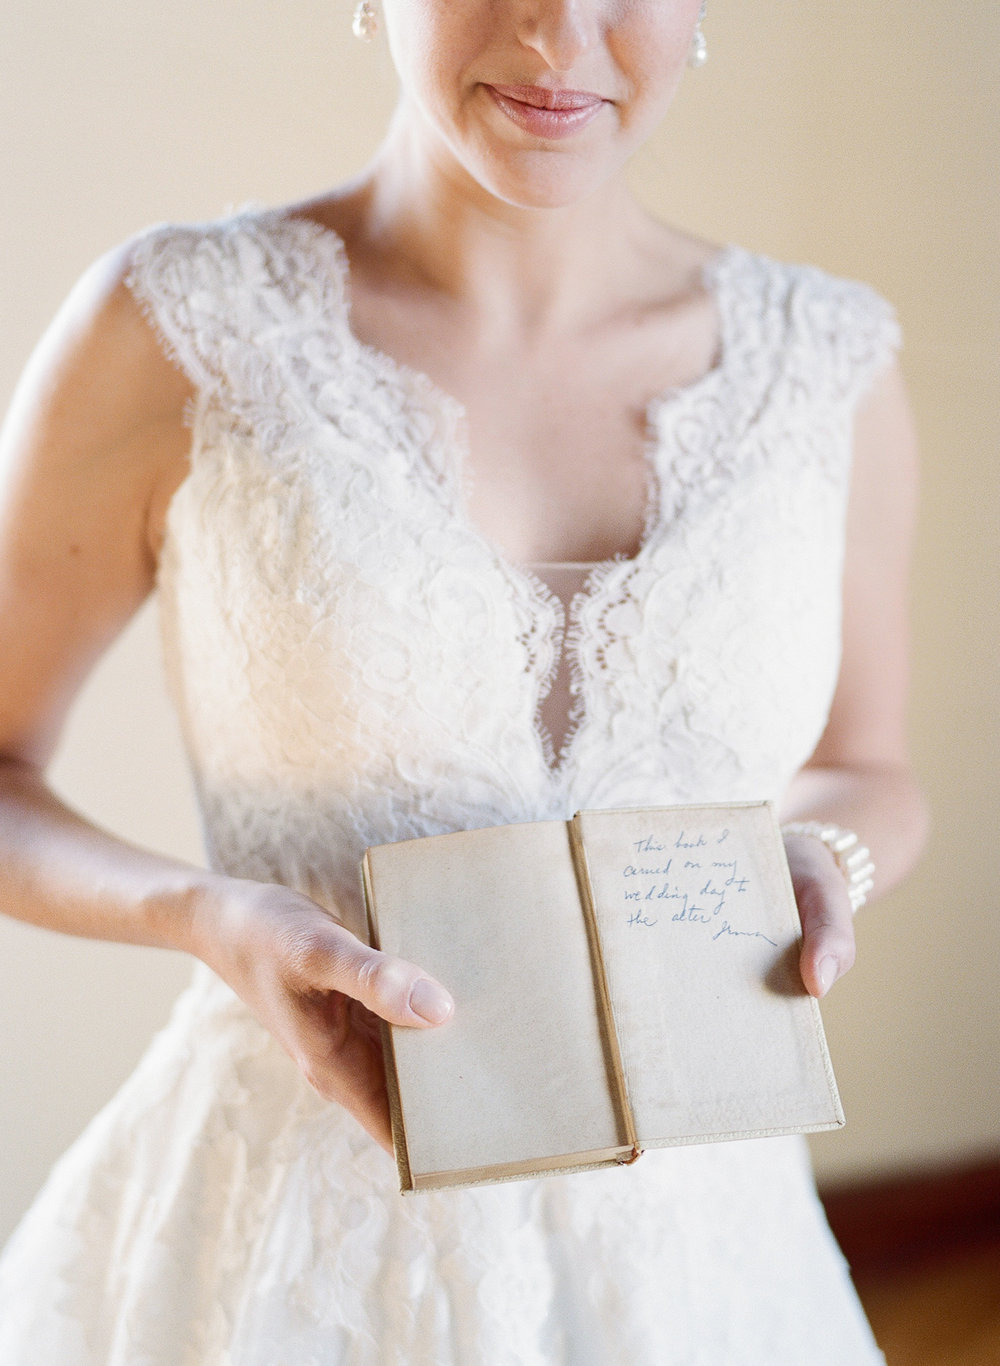 Bride's Grandmother's Prayer Book